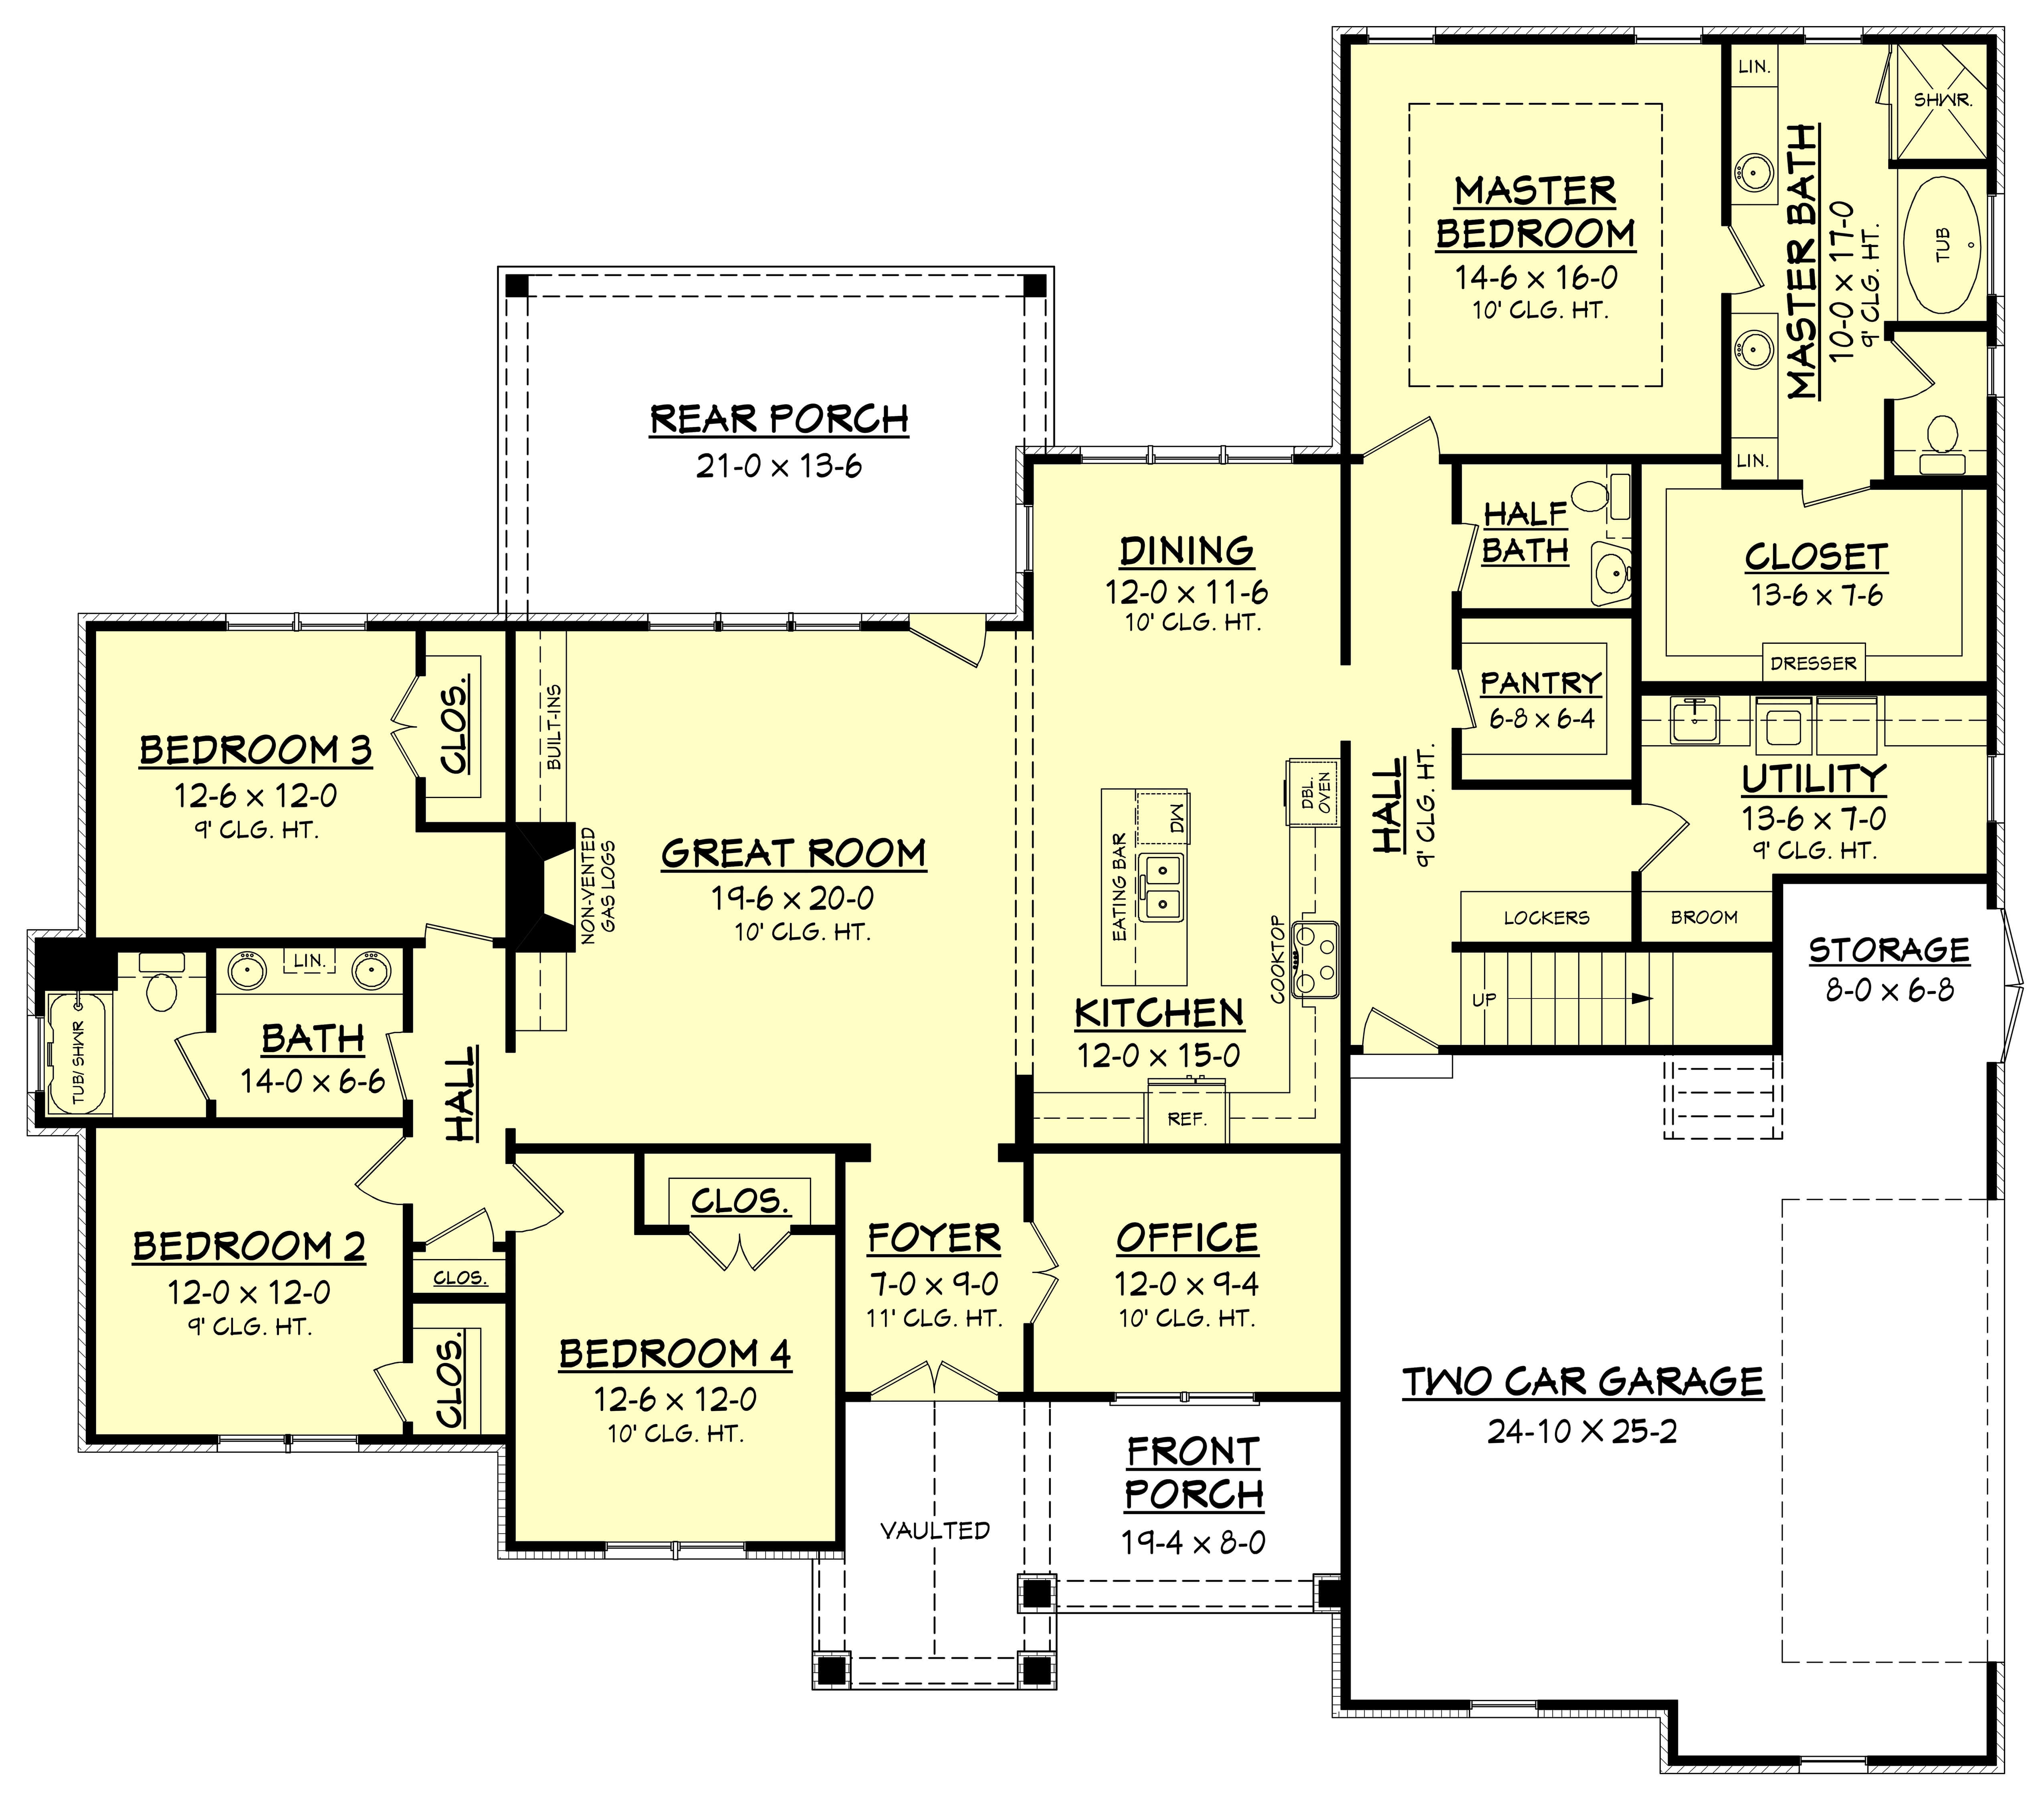 Home Design Plans Video: 4 Bedrm, 2641 Sq Ft Country House Plan #142-1170